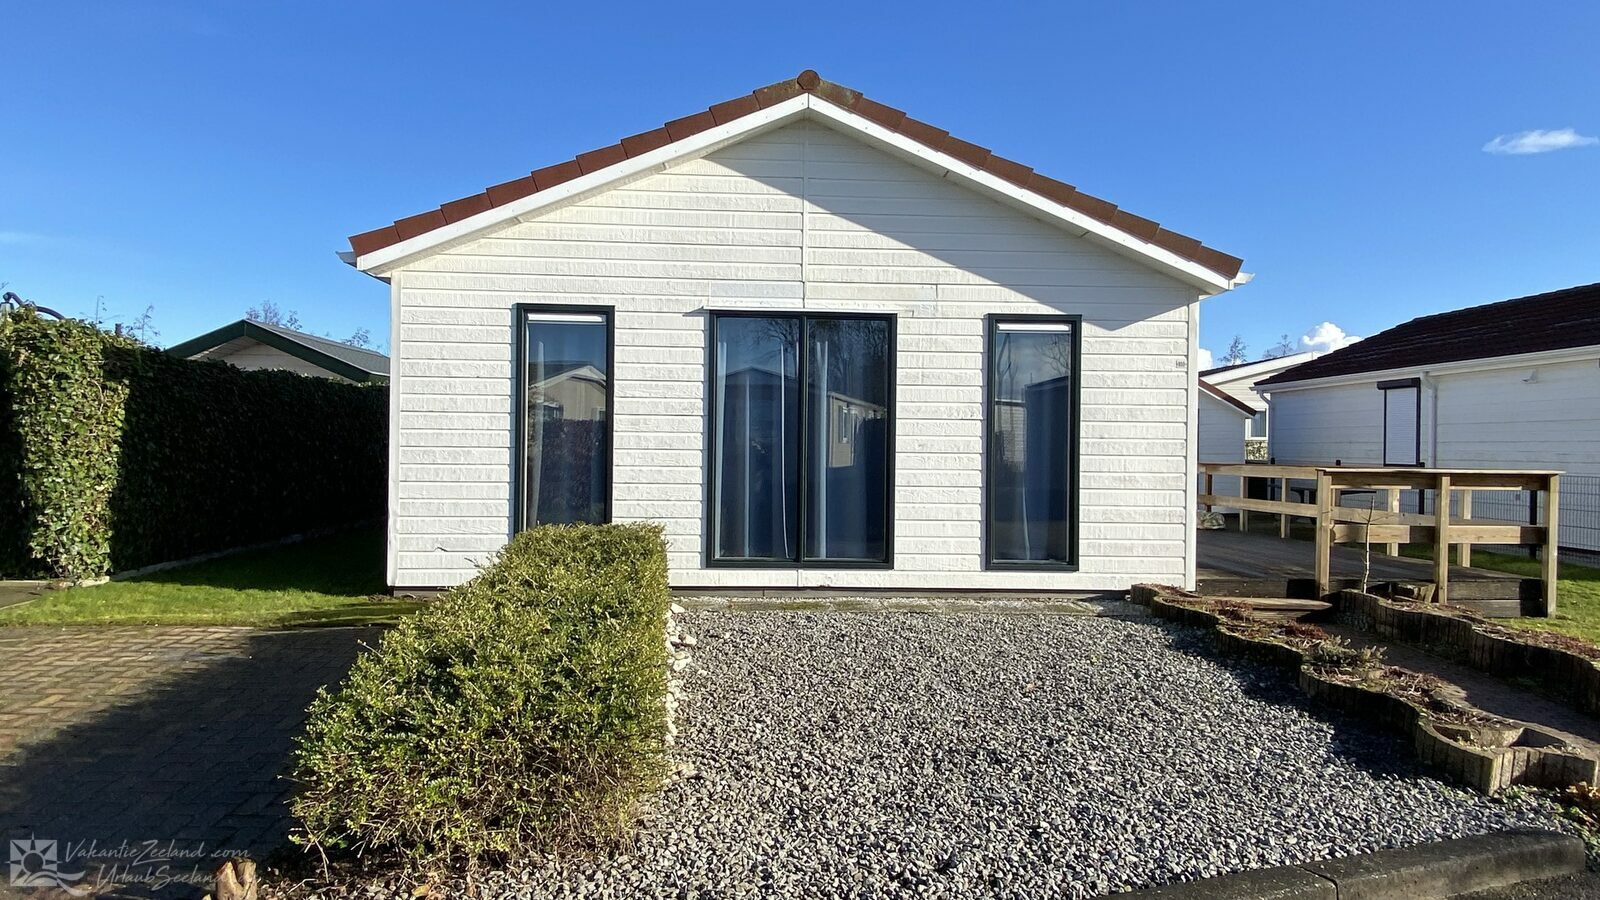 VZ926 Holiday chalet in Sint-Annaland